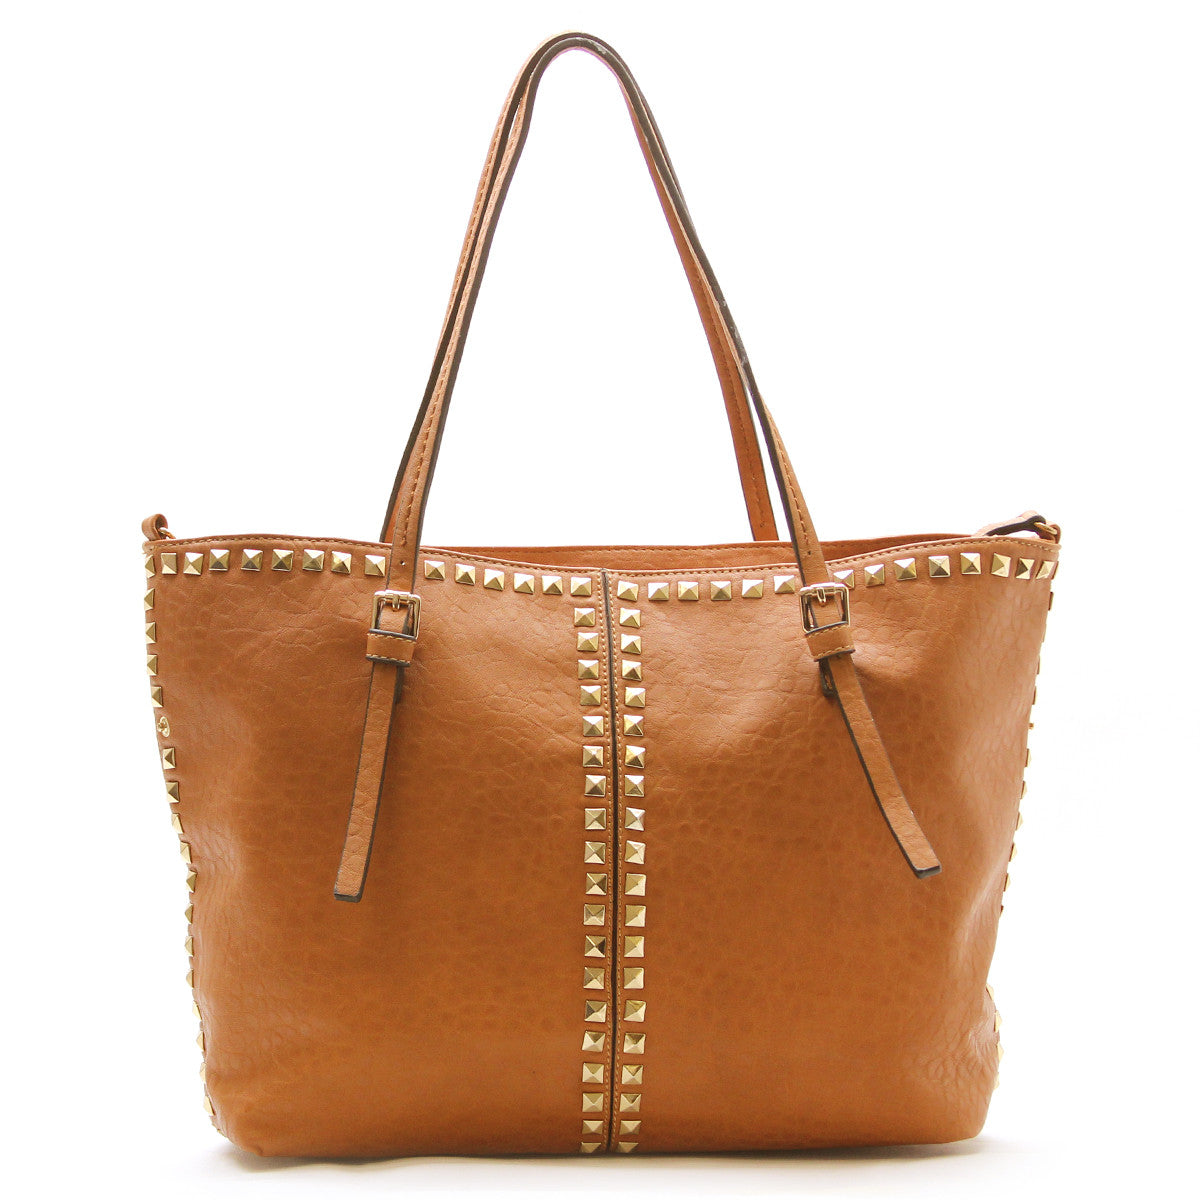 Studded Weekend Tote - Tan - Pop Fashion